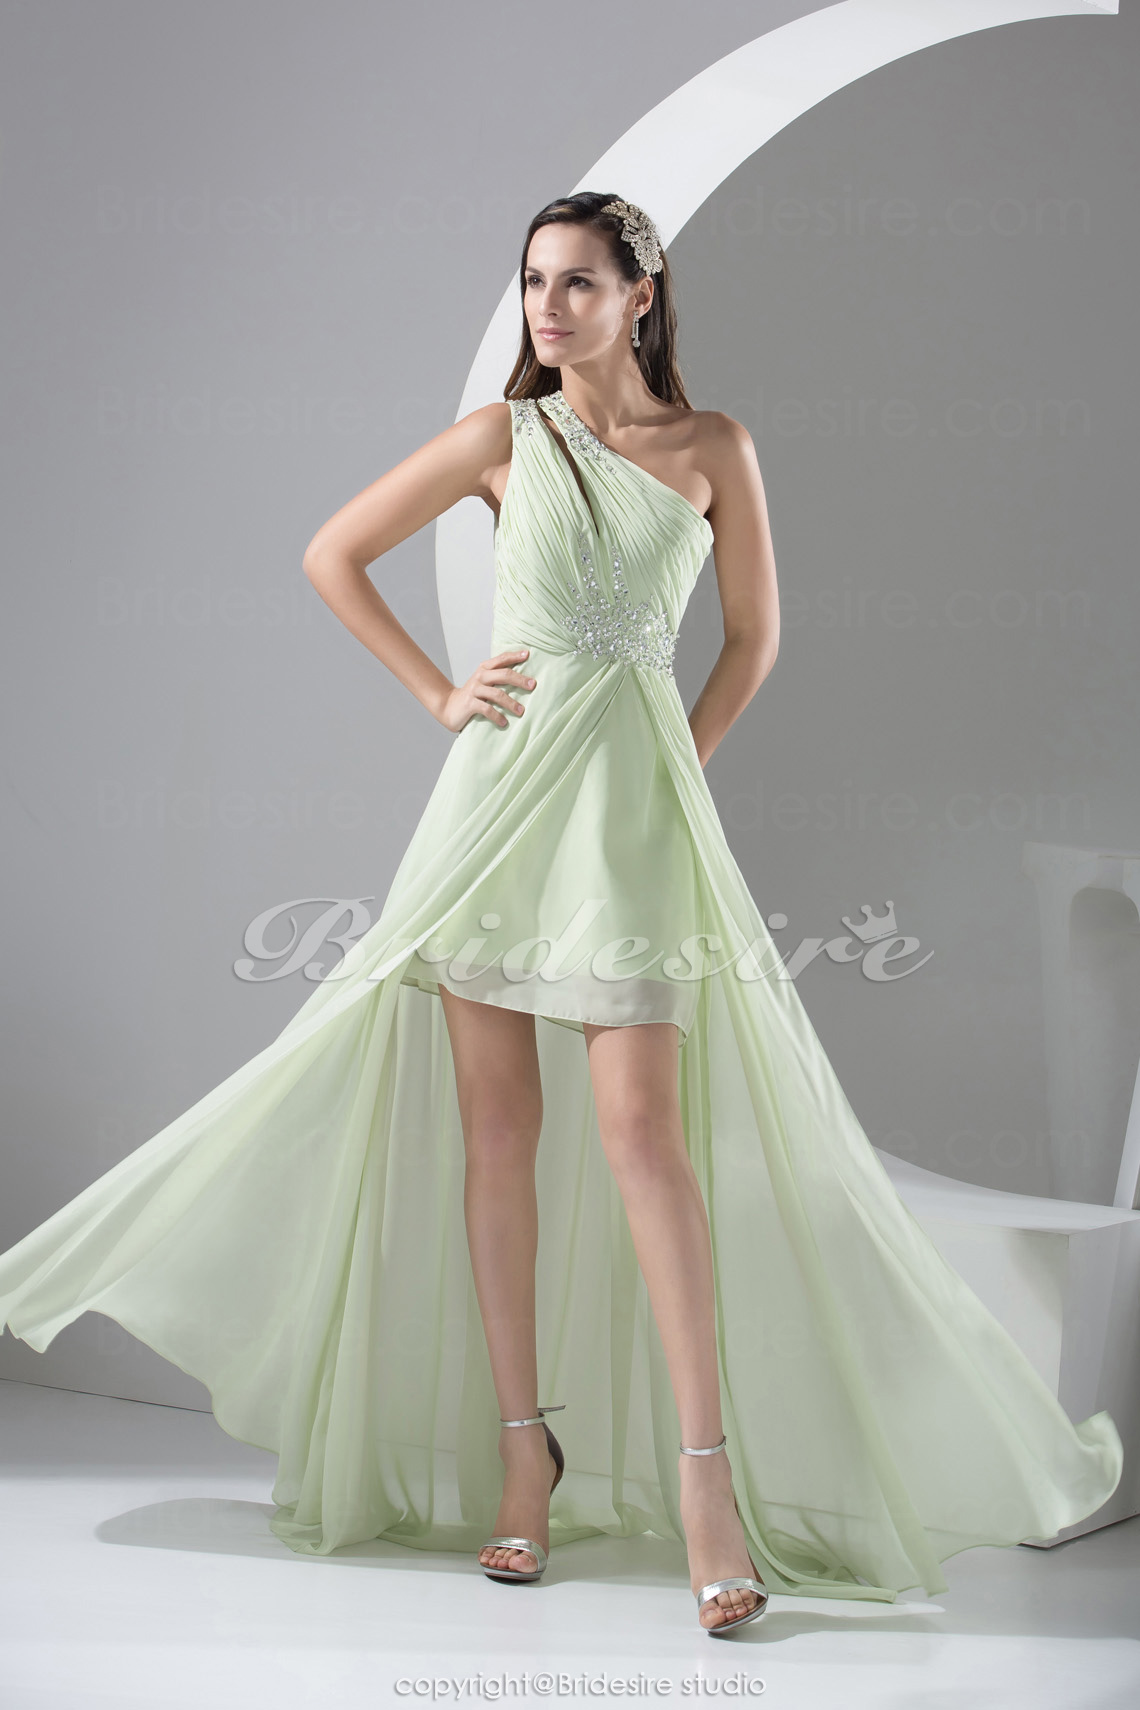 Sheath/Column One Shoulder Asymmetrical Sleeveless Chiffon Dress